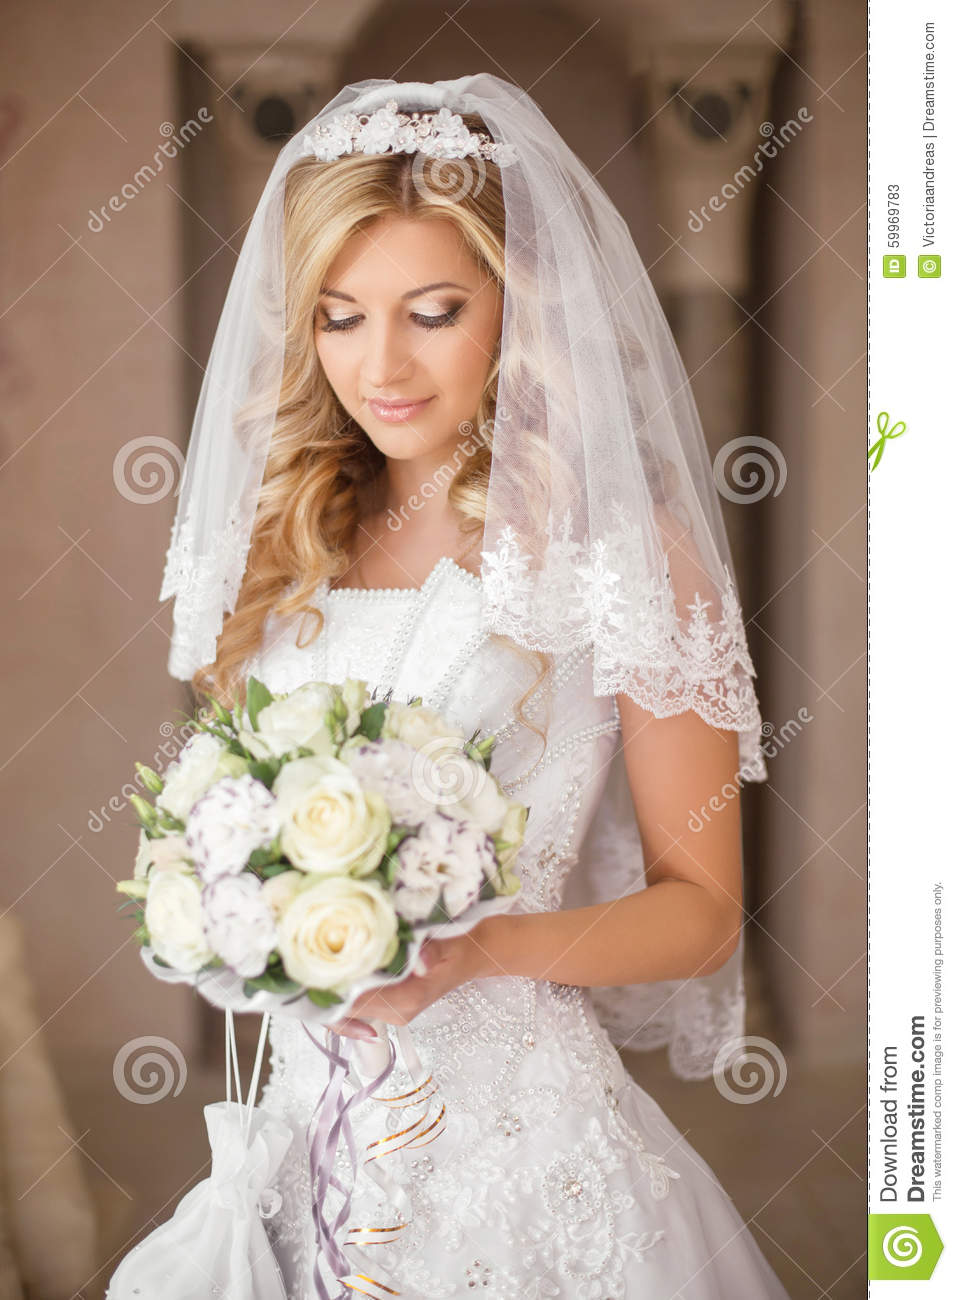 Bride is pretty and